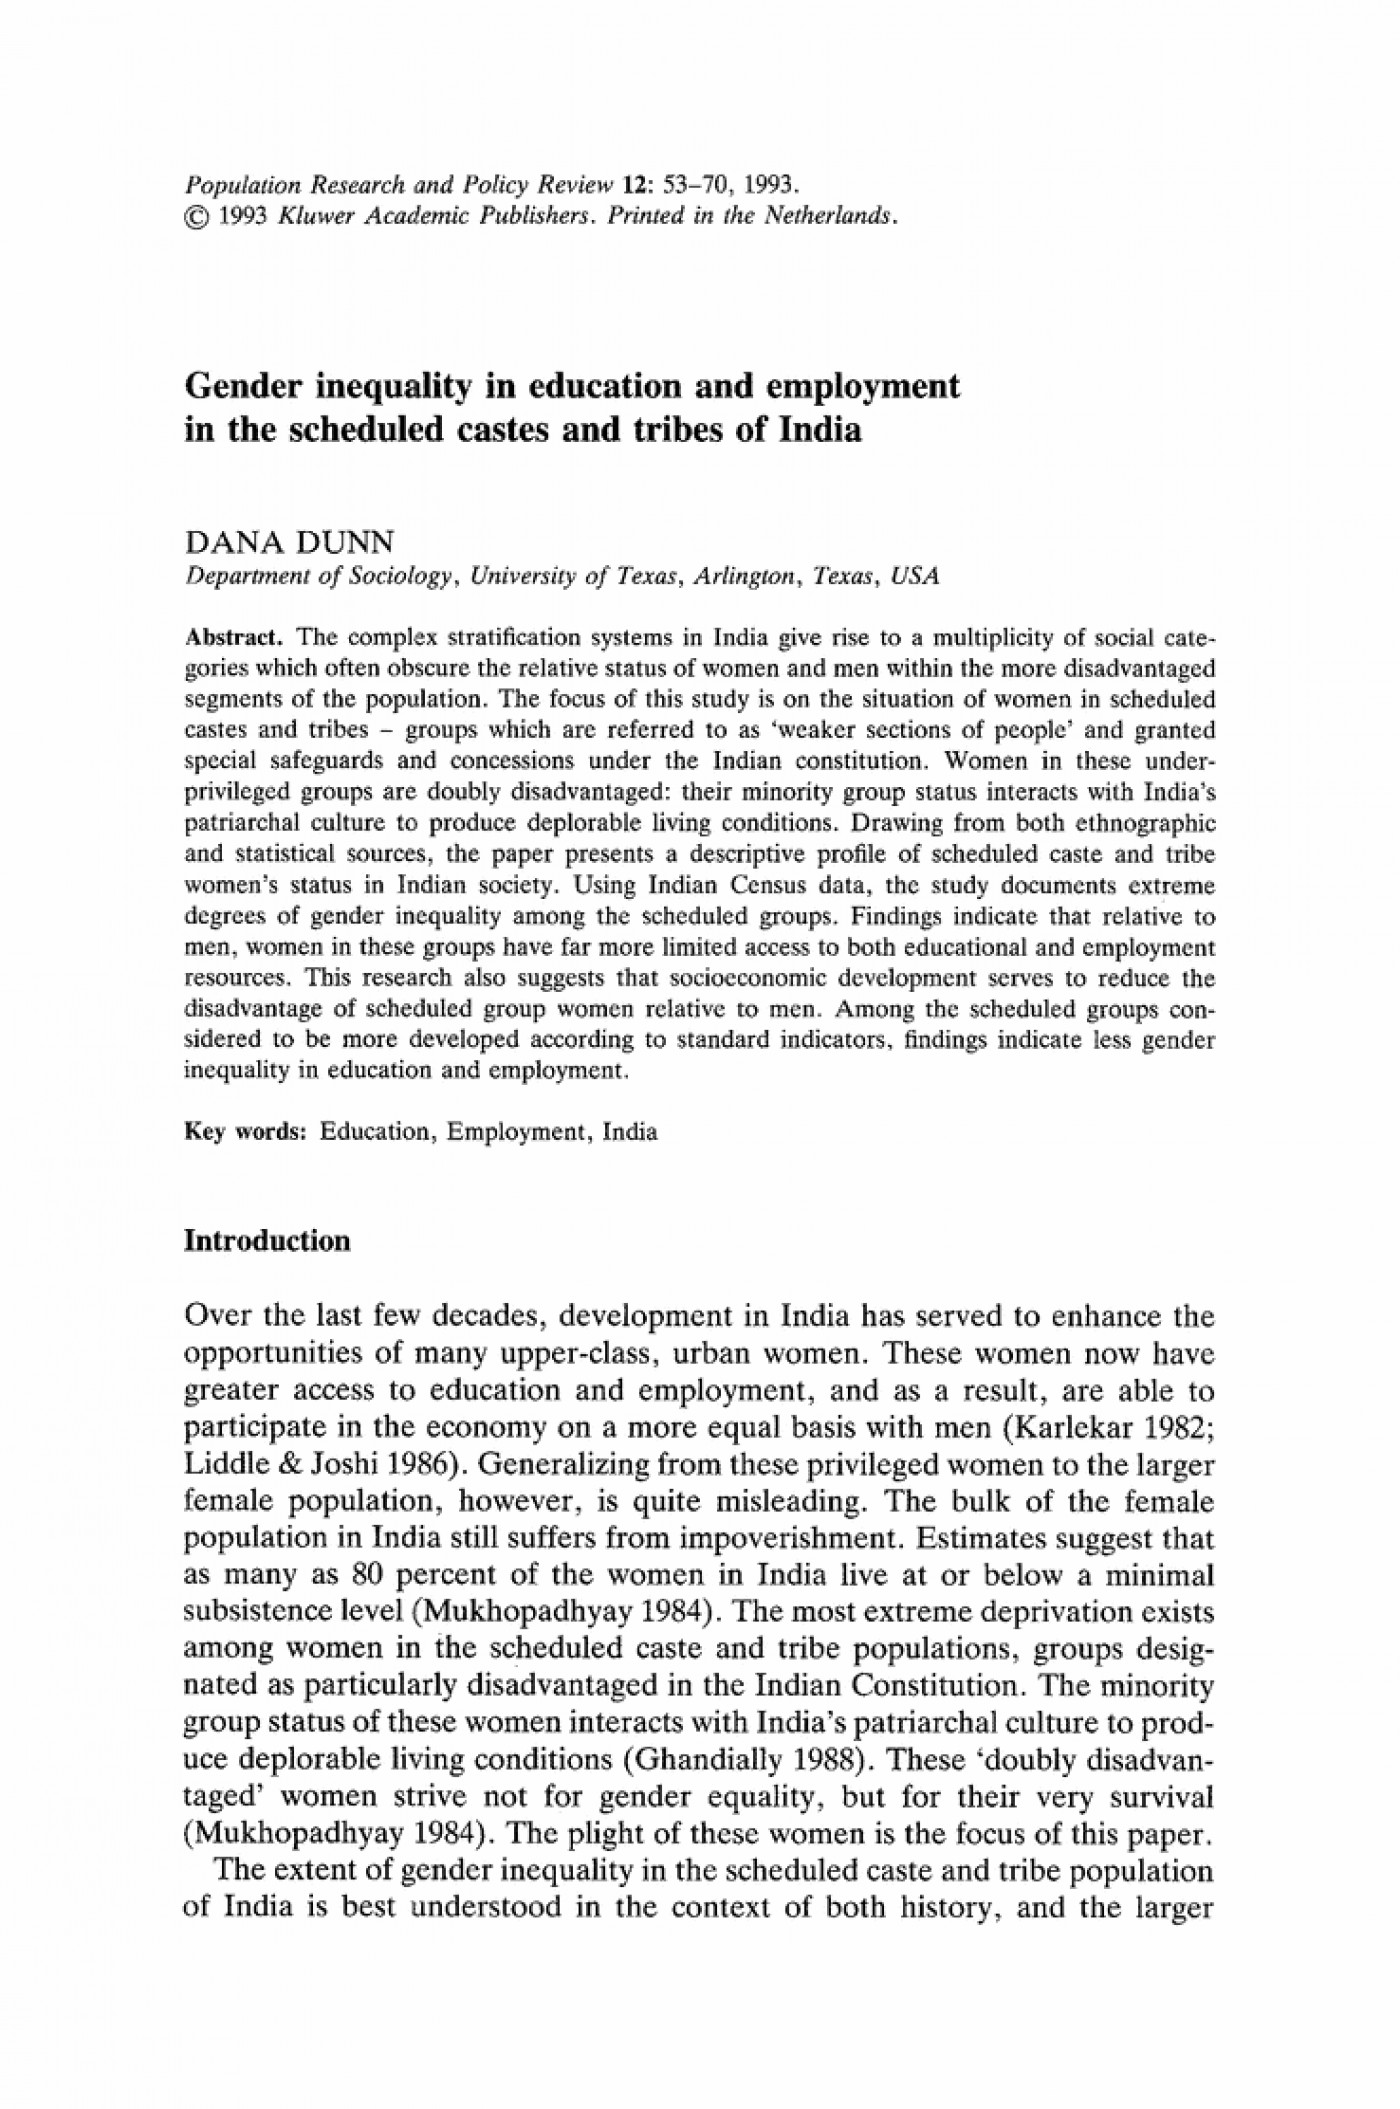 005 Essay Example Equality About Education And Employment On In Indiaathenata Com Gender L Formidable Questions Titles 1400